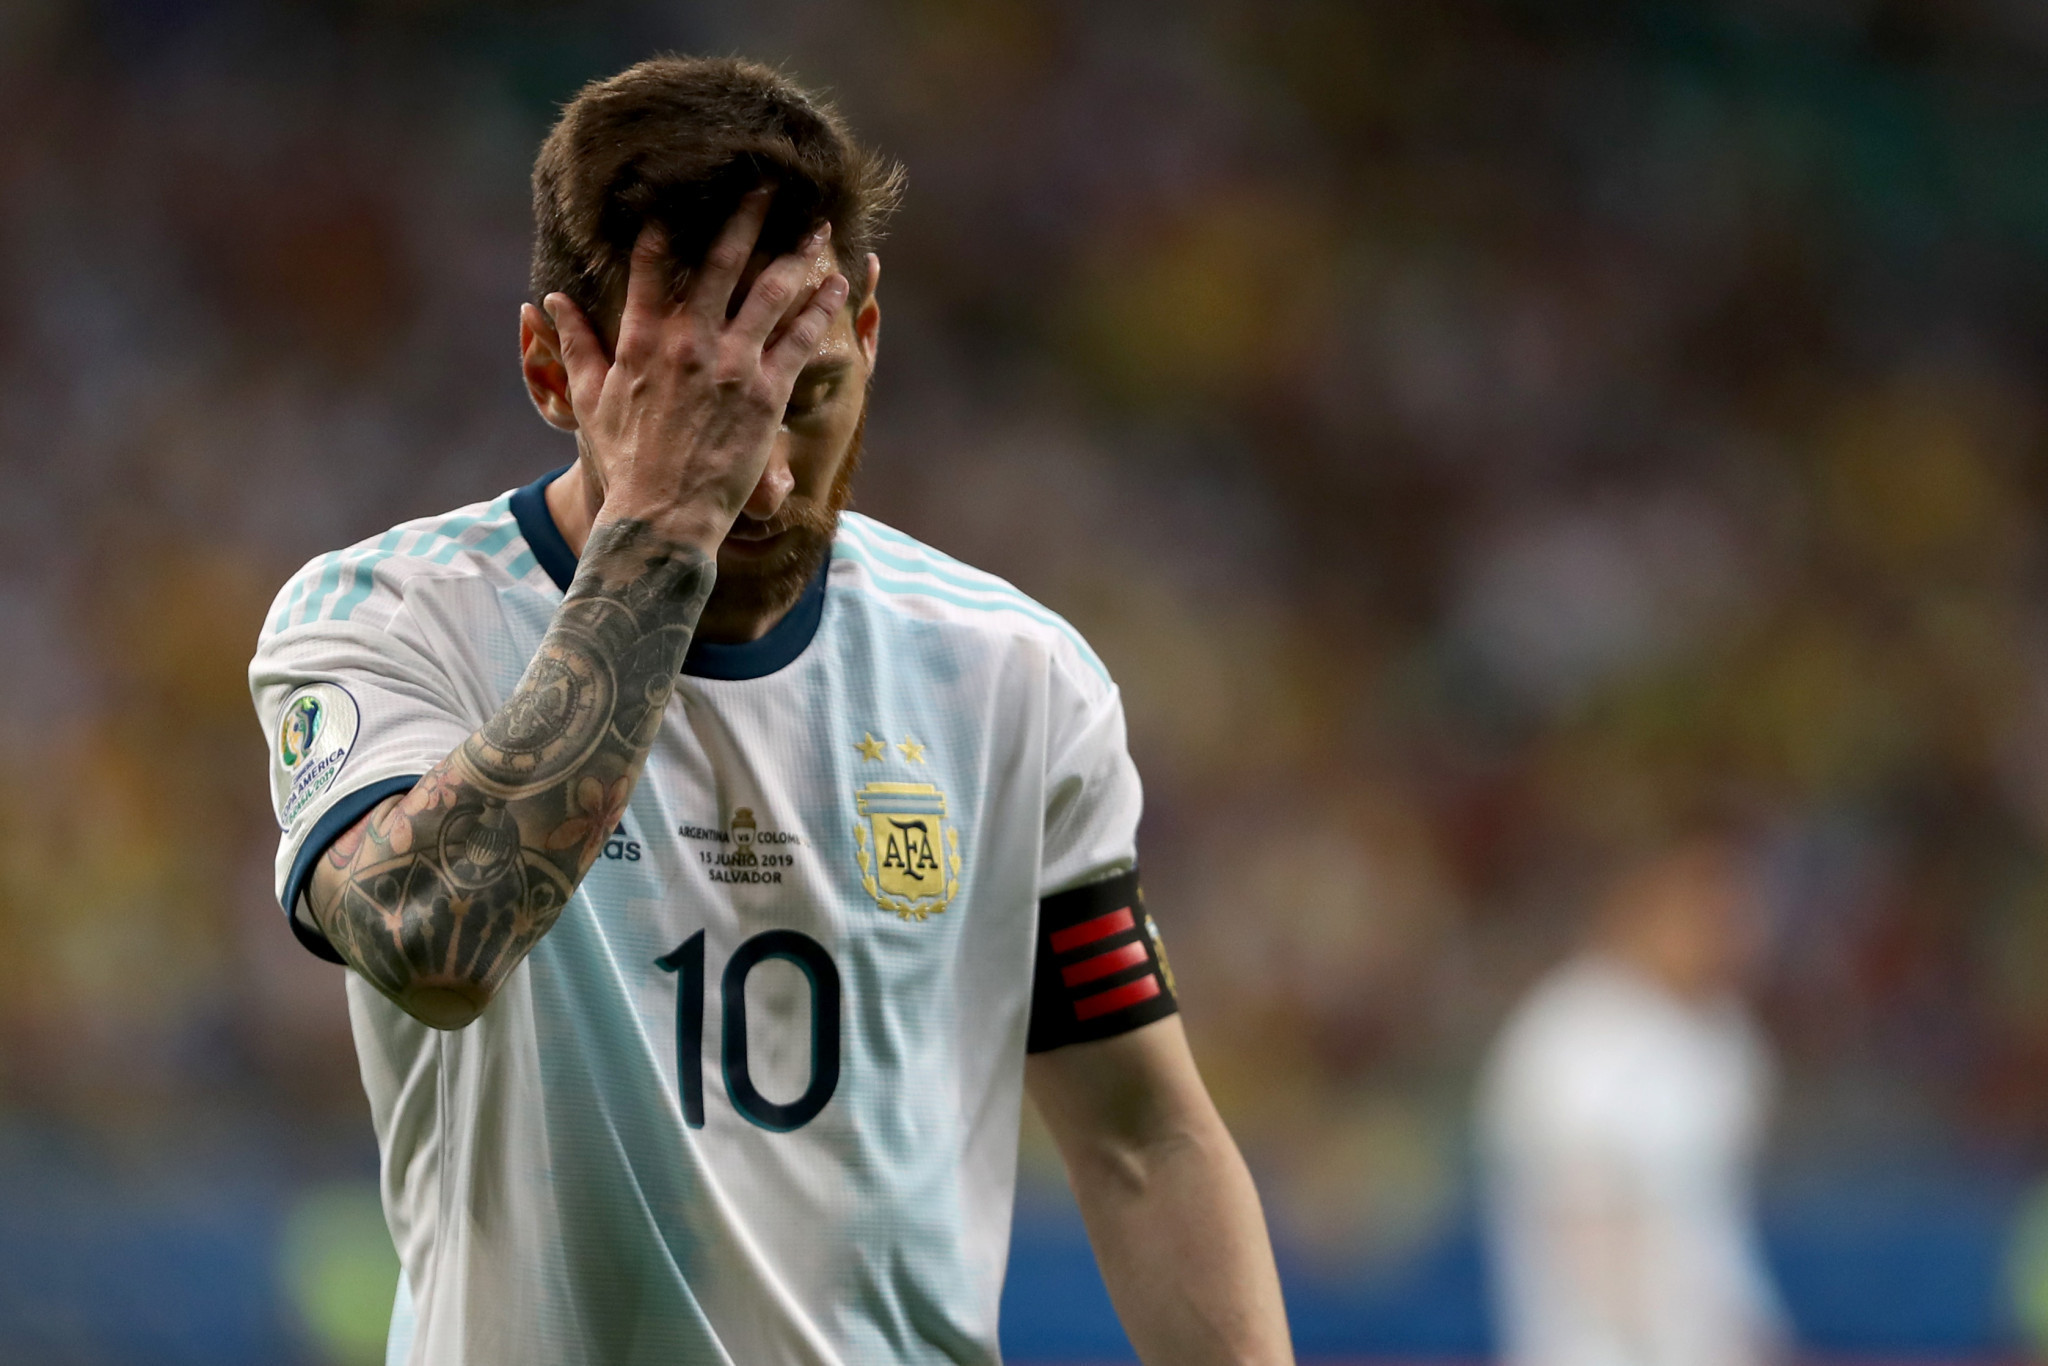 Copa América moved to Brazil as Argentina becomes second country to lose hosting rights